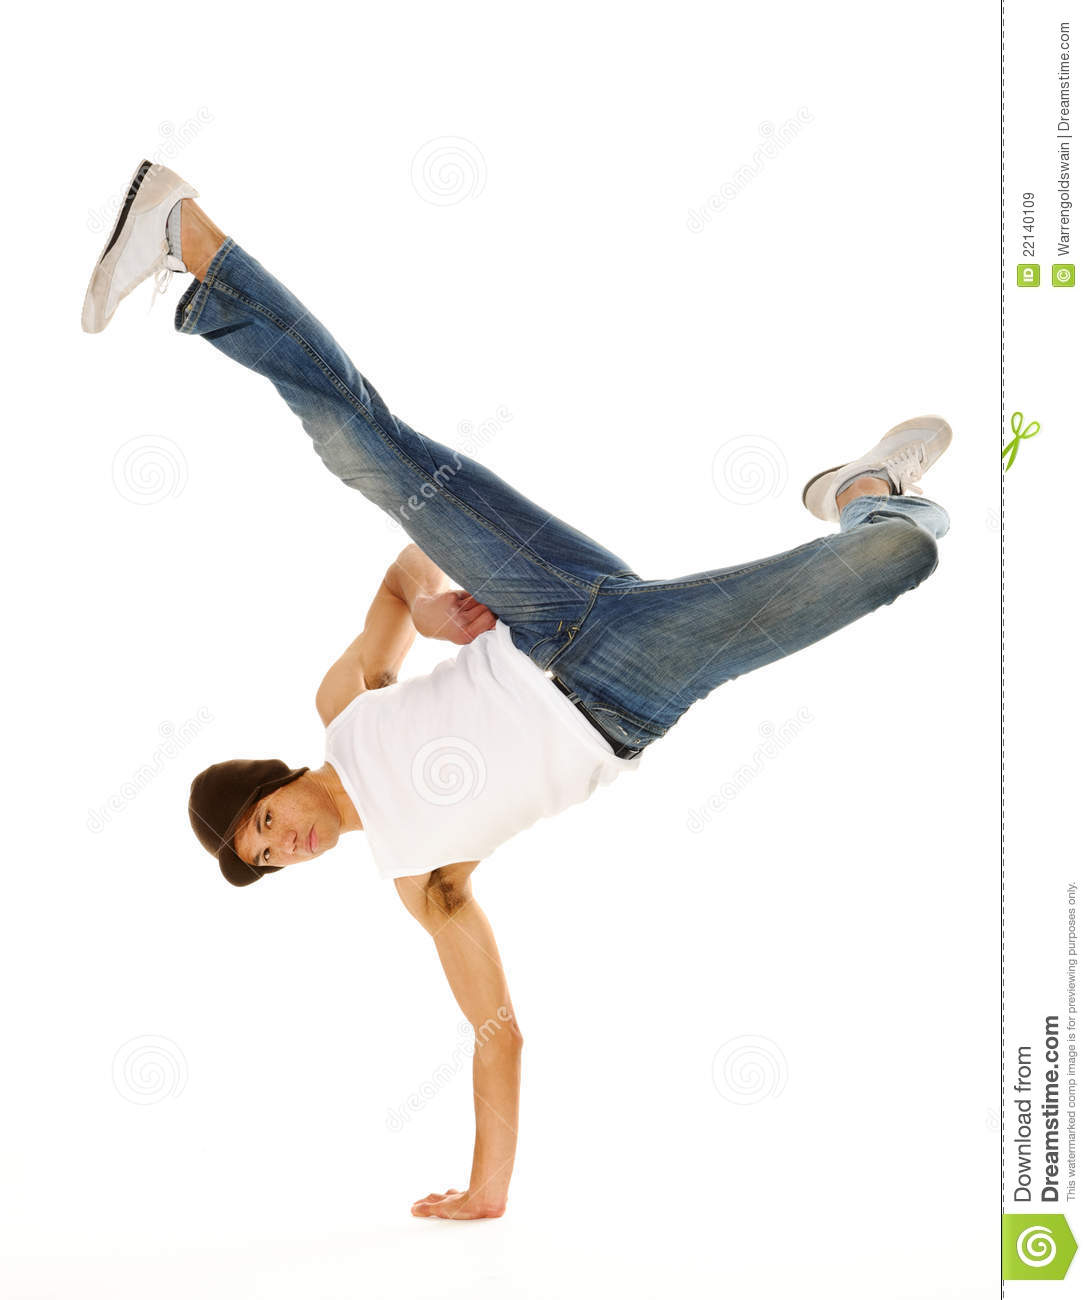 Awesome Breakdancing Moves Royalty Free Stock Images ...